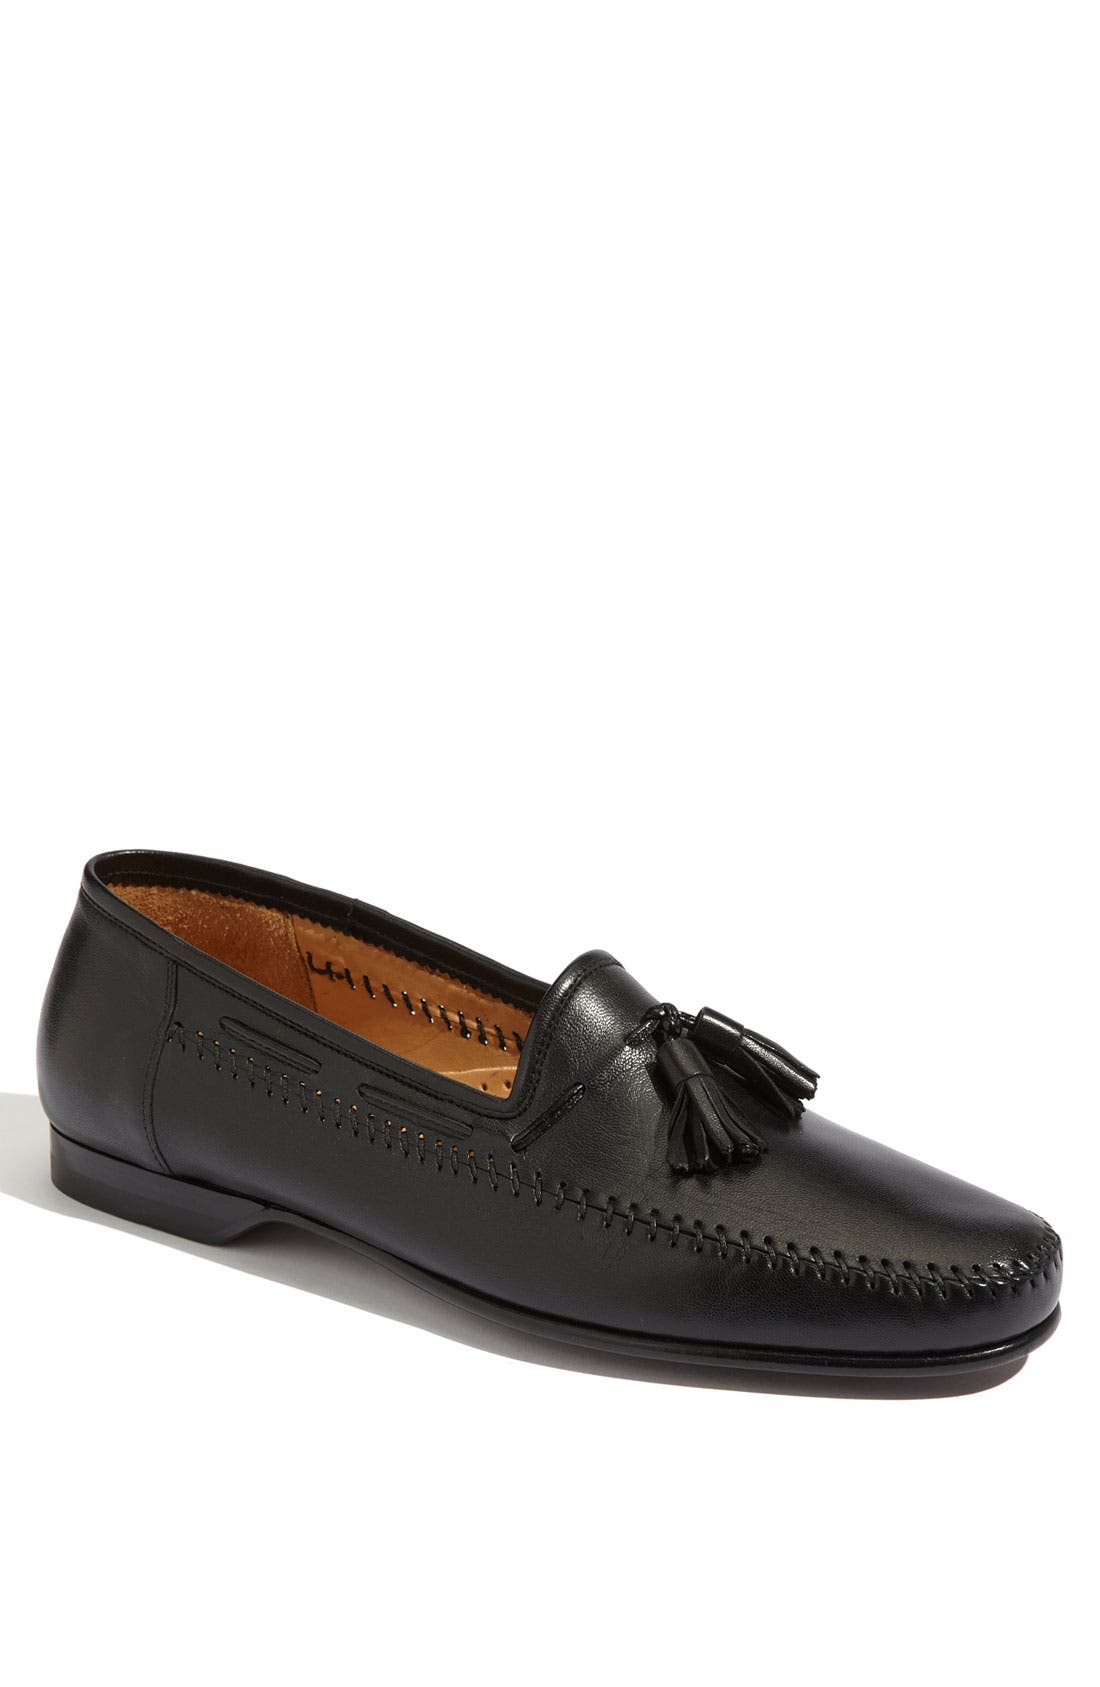 Alternate Image 1 Selected - Magnanni 'Ancona' Loafer